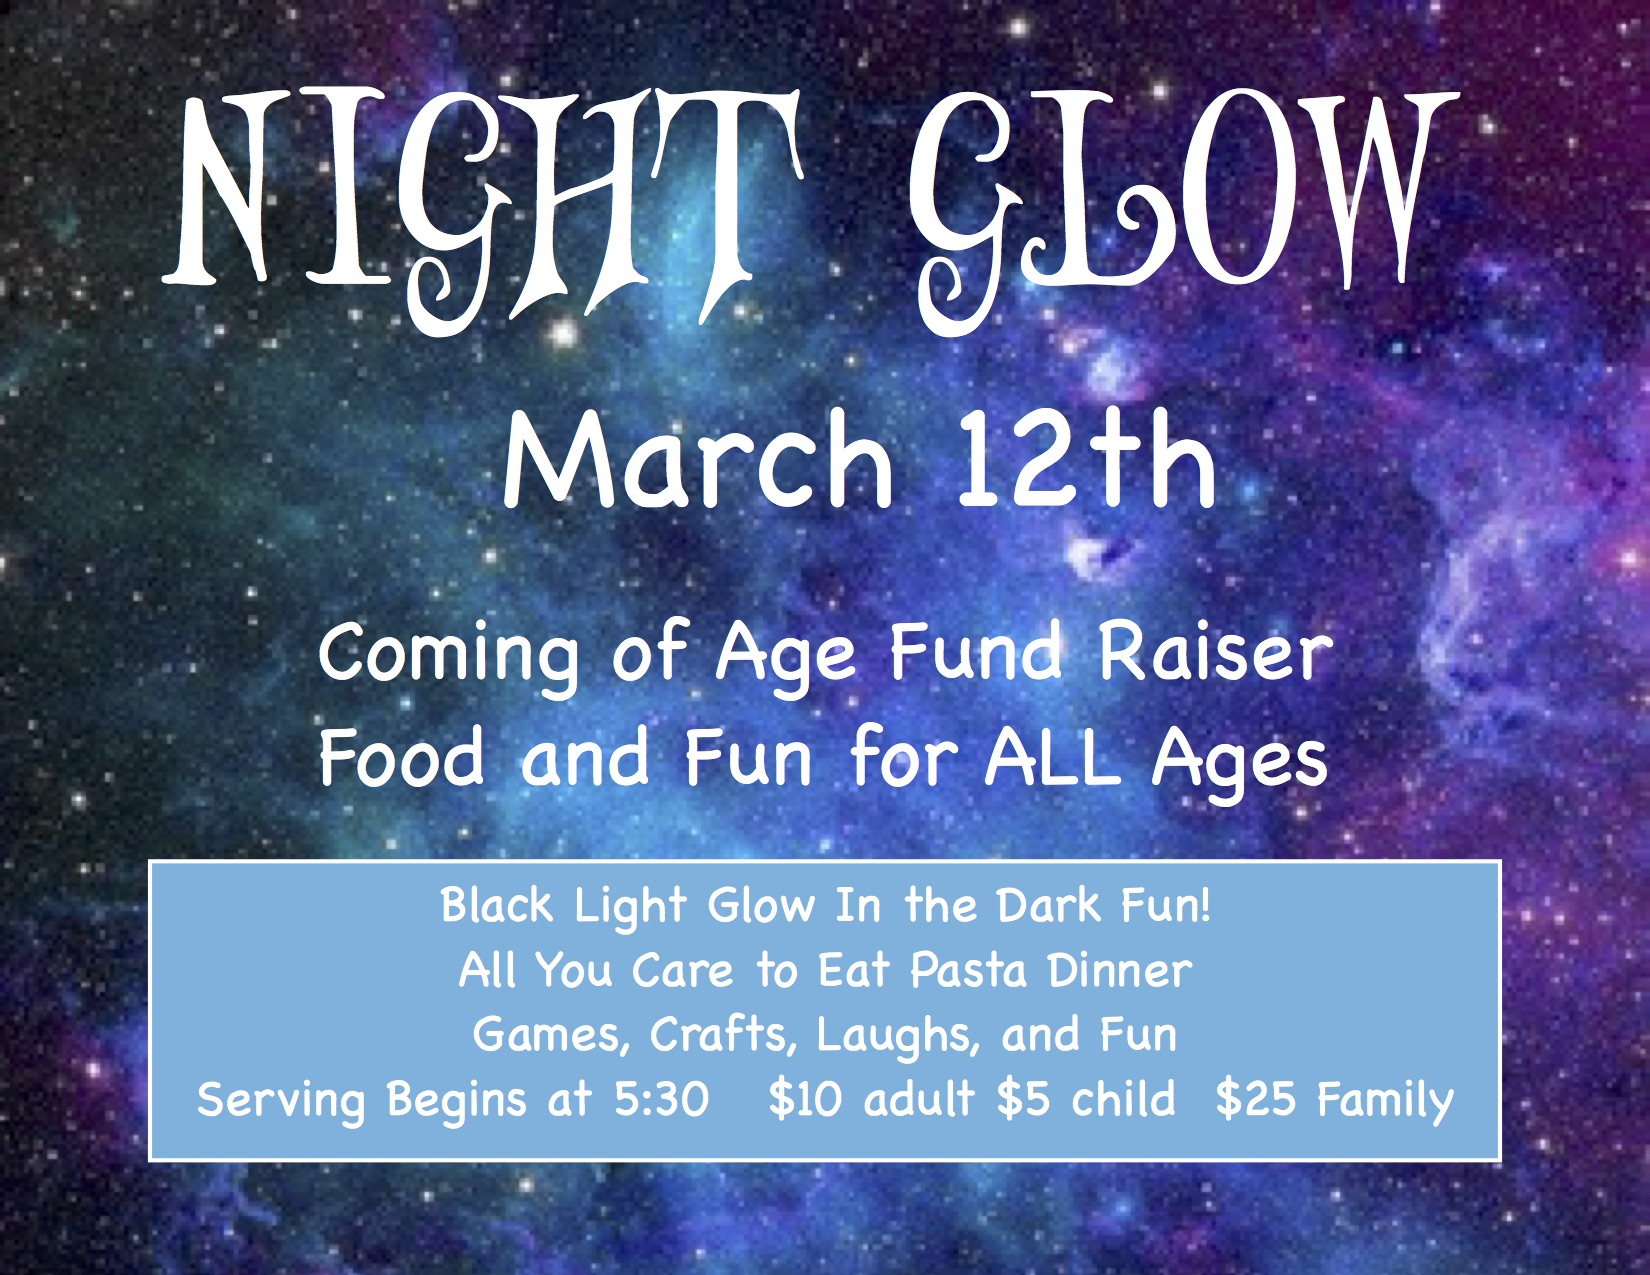 Night Glow: March 12th, Coming of Age Fund Raiser. Food and Fun for All Ages. Black Light Glow In the Dark Fun! All you care to eat pasta dinner, games, crafts, laughs, and fun. Serving begins at 5:30. $10 adult, $5 child, $25 family